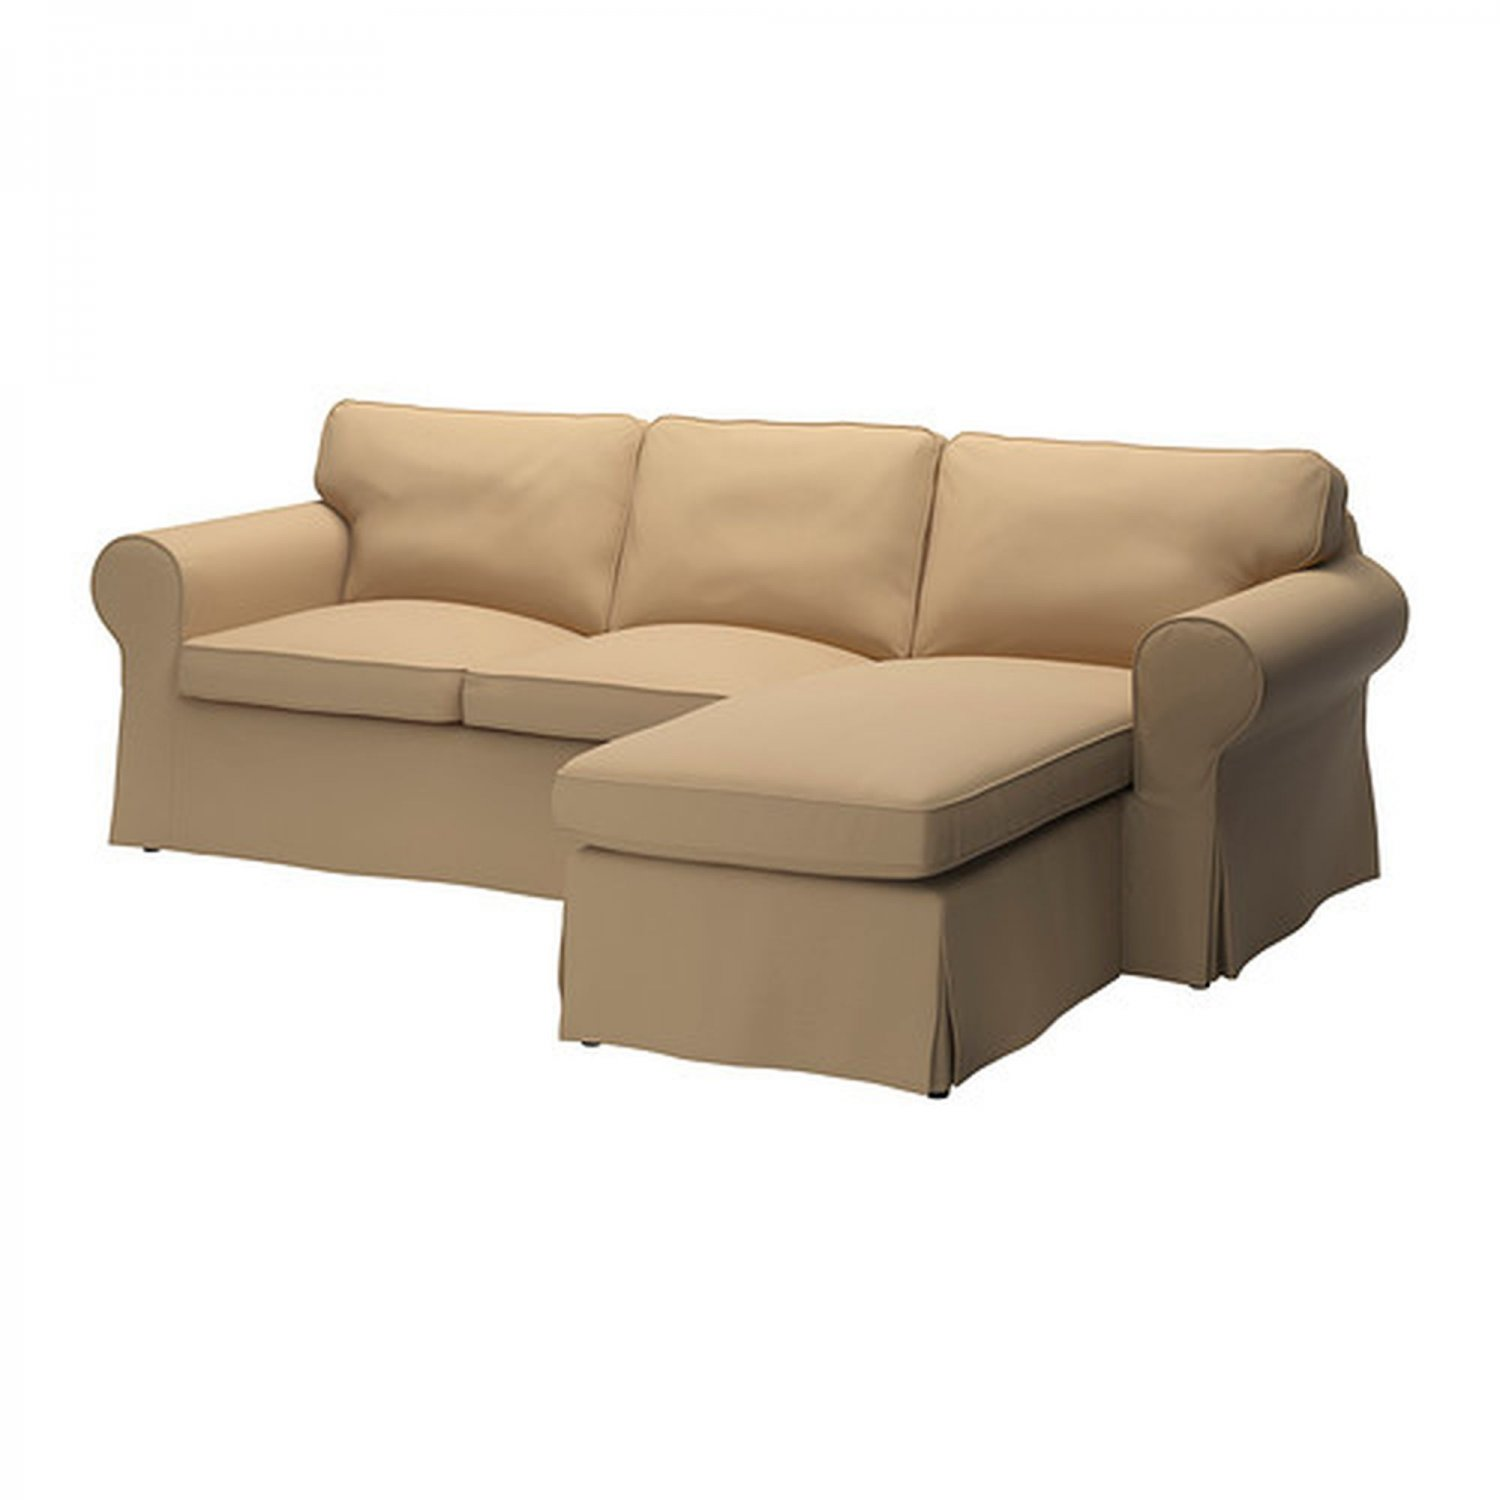 IKEA EKTORP 2 Seat Loveseat Sofa With Chaise COVER Slipcover IDEMO BEIGE W Pi